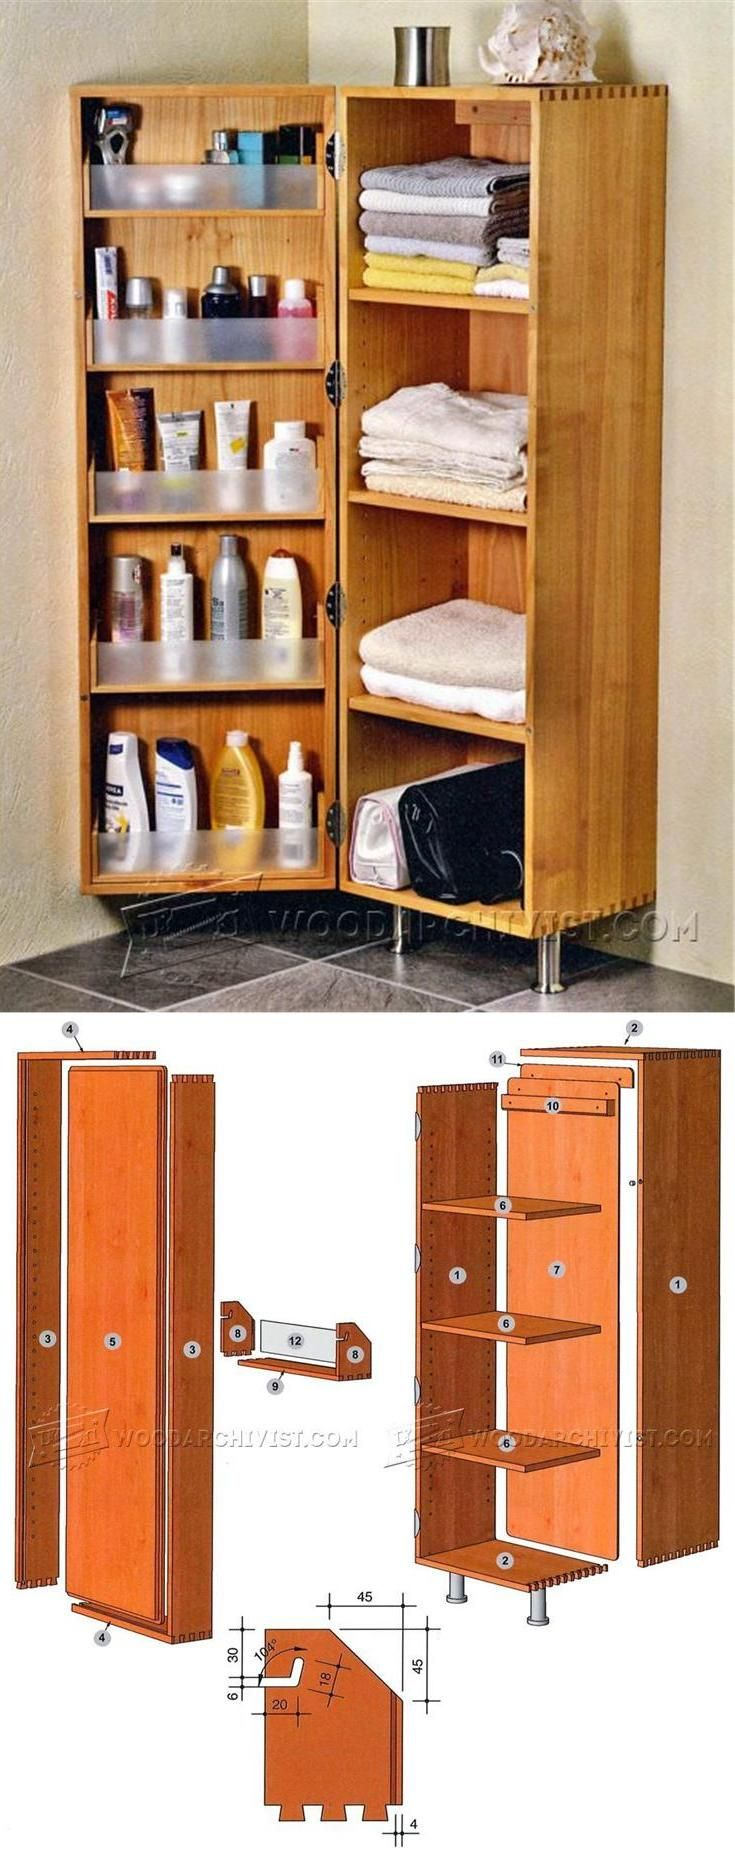 bathroom corner cabinet plans furniture plans and projects - Corner Bathroom Cabinet